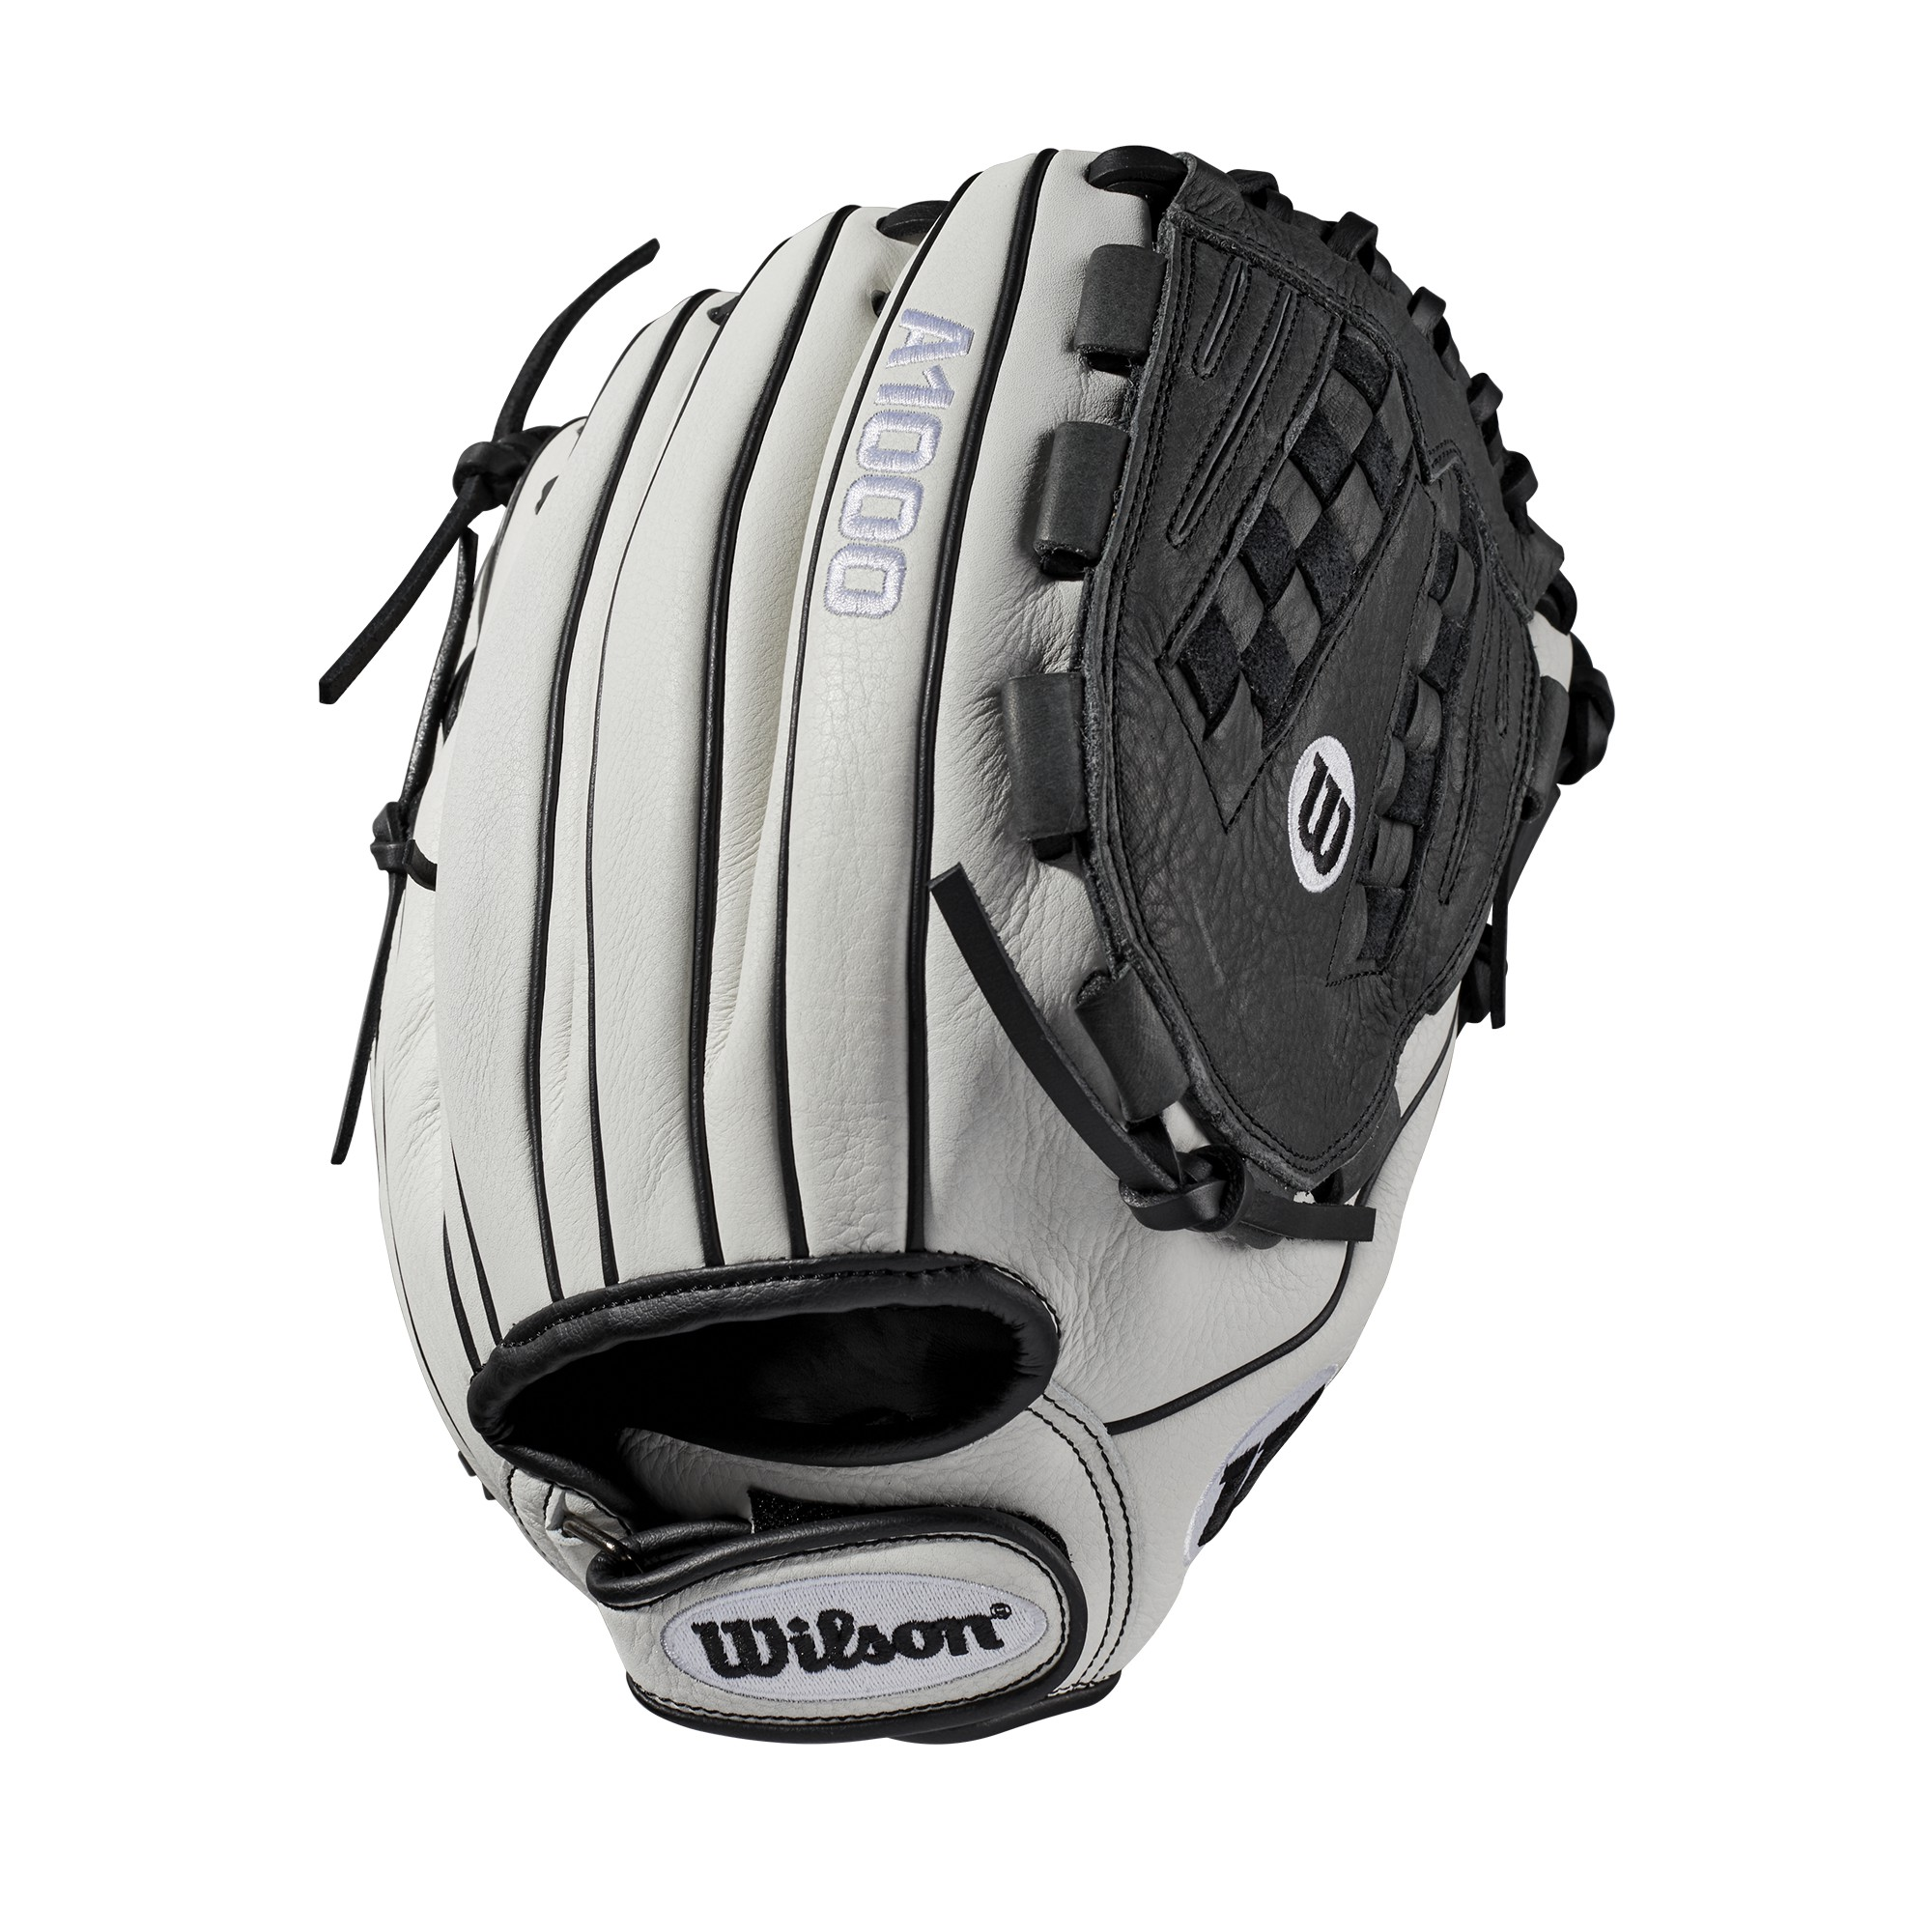 Wilson A1000 Series Fastpitch Softball Gloves, Multiple Sizes Positions by Wilson Sporting Goods